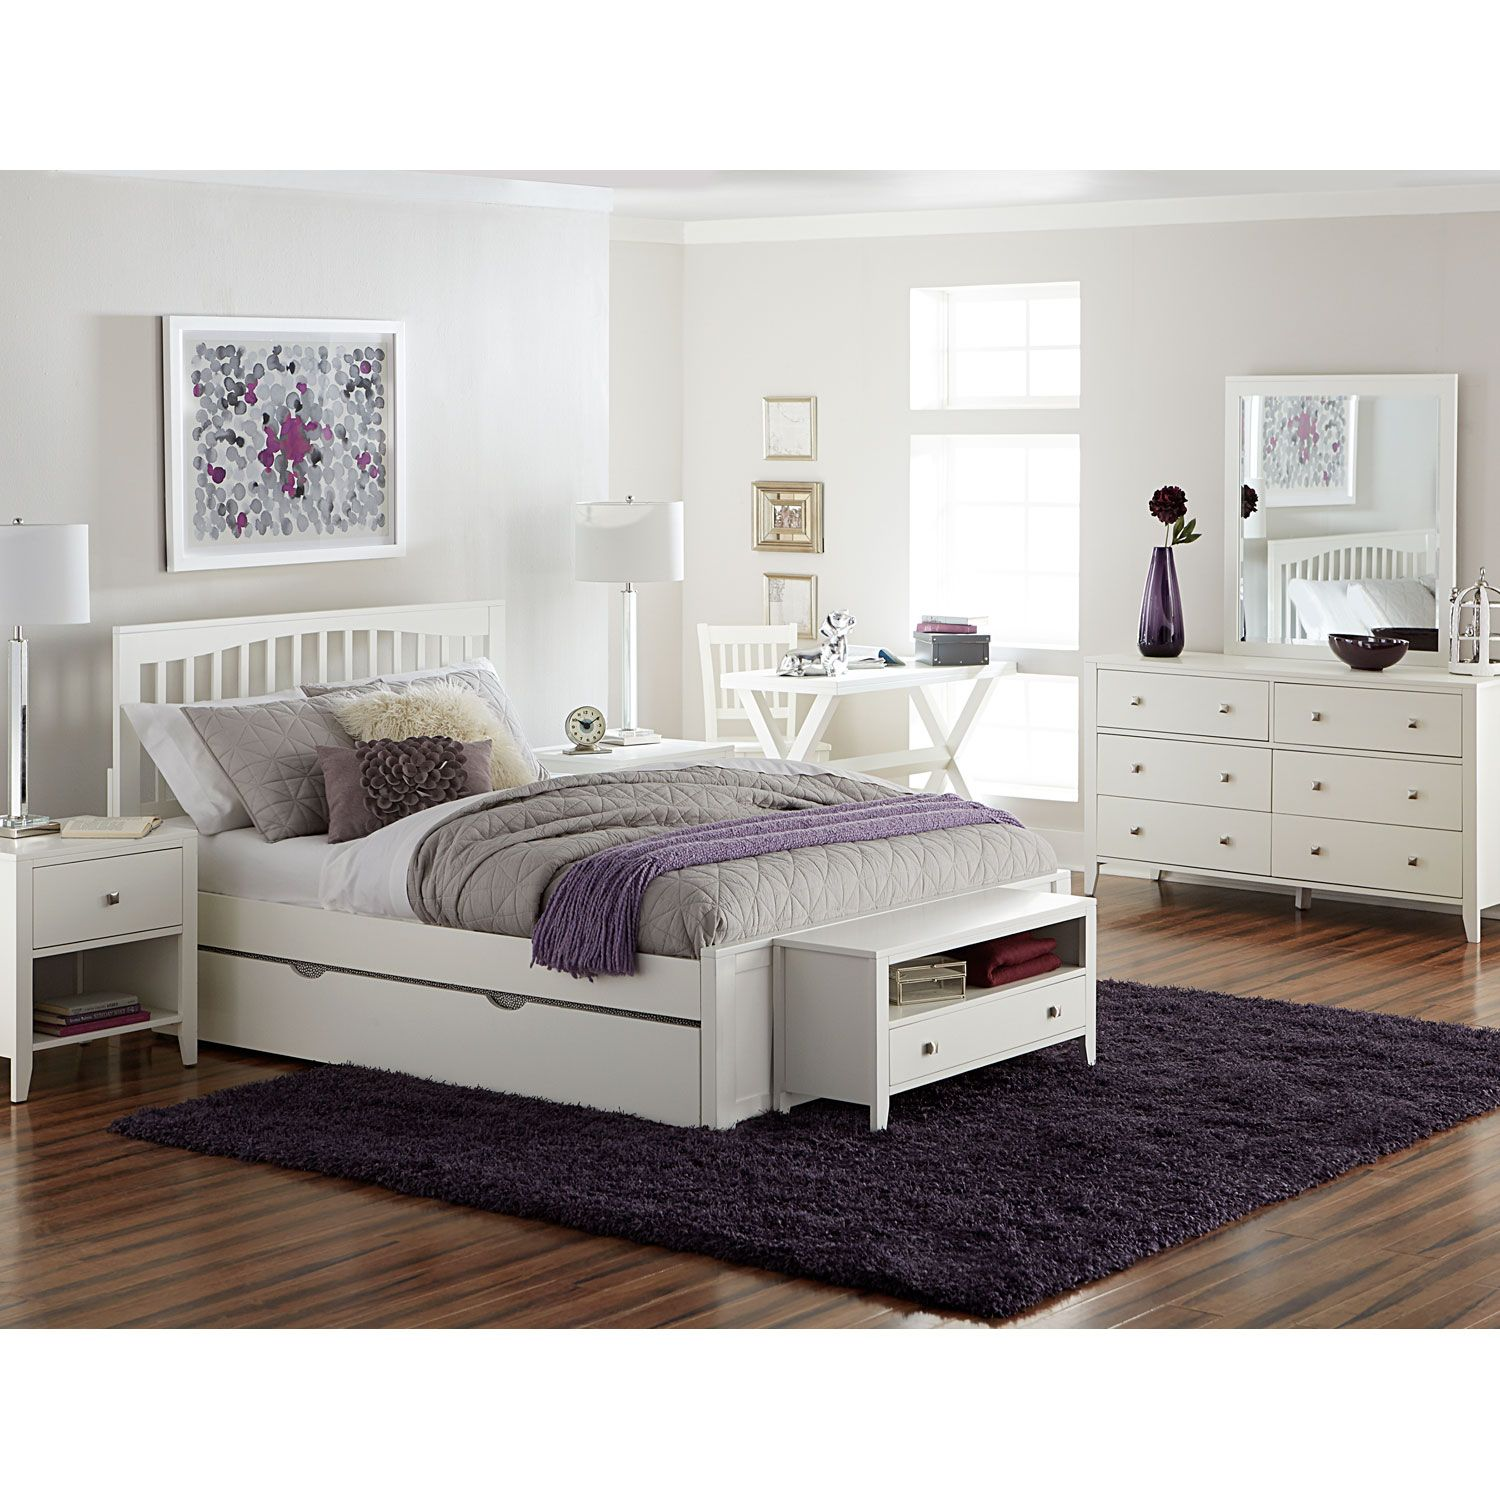 pulse white queen mission bed with trundle ne kids standard standard rh pinterest com